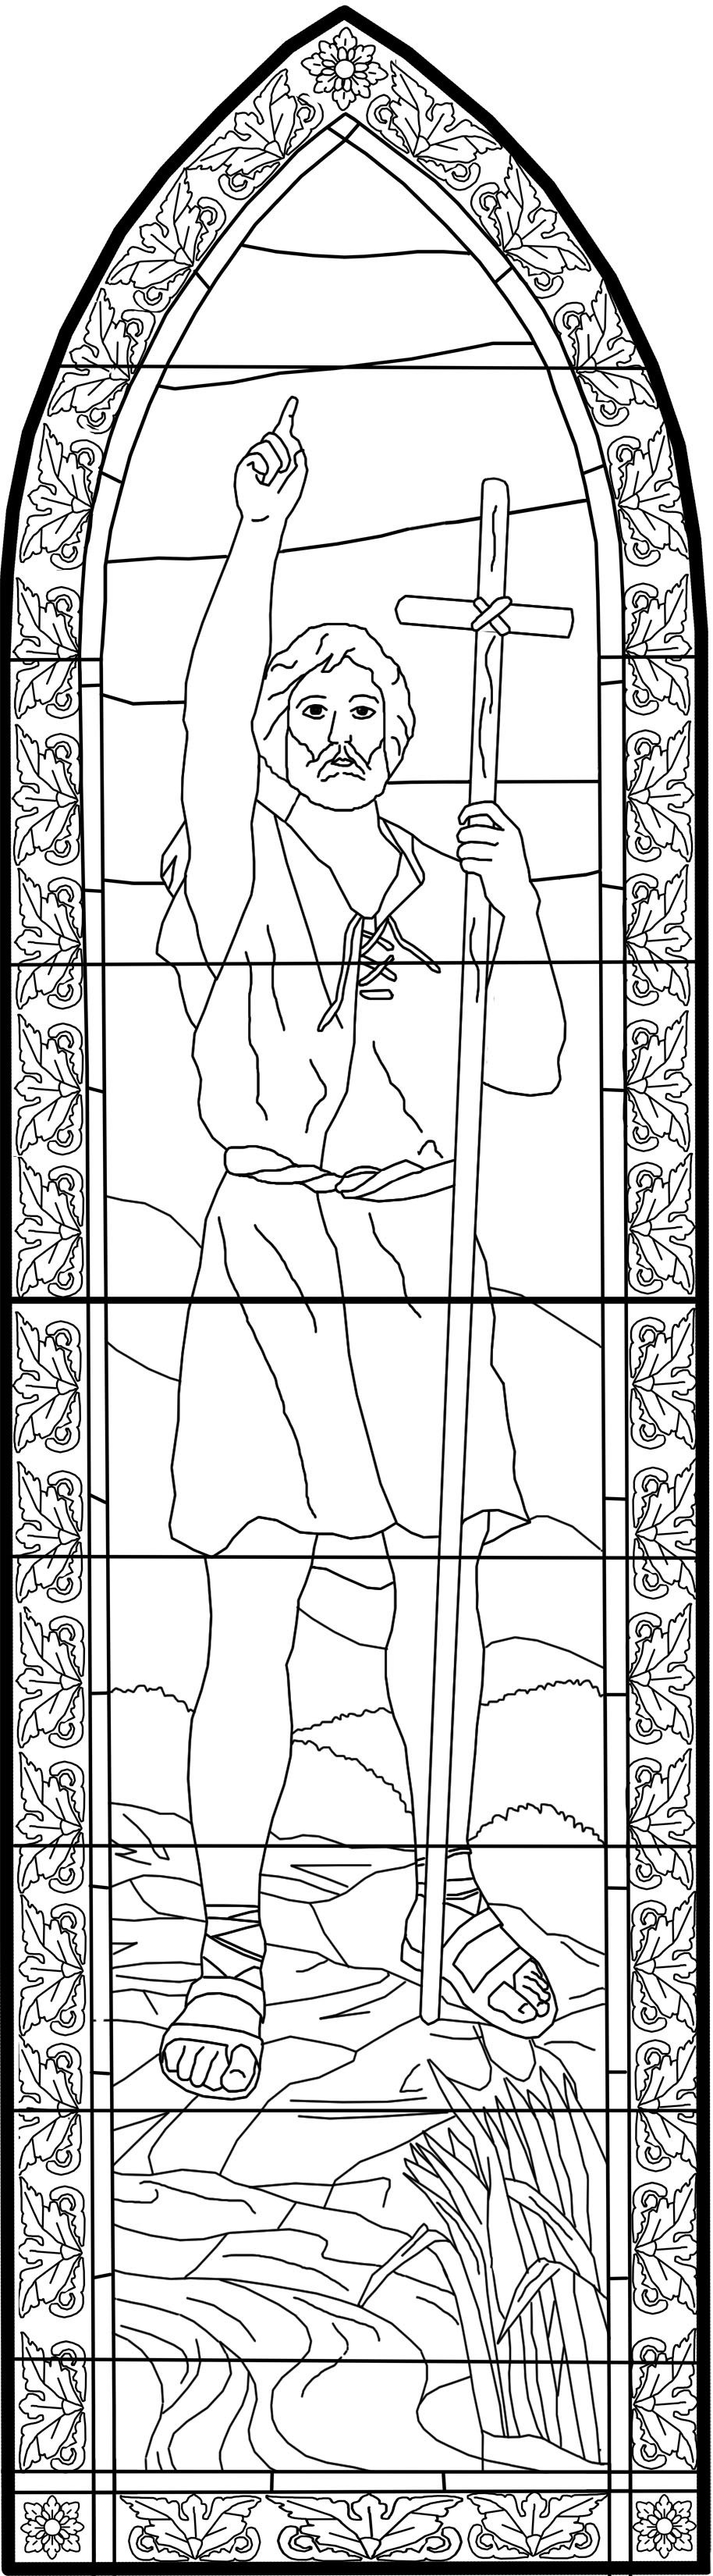 catholic church coloring pages - st john the baptist catholic church coloring pages